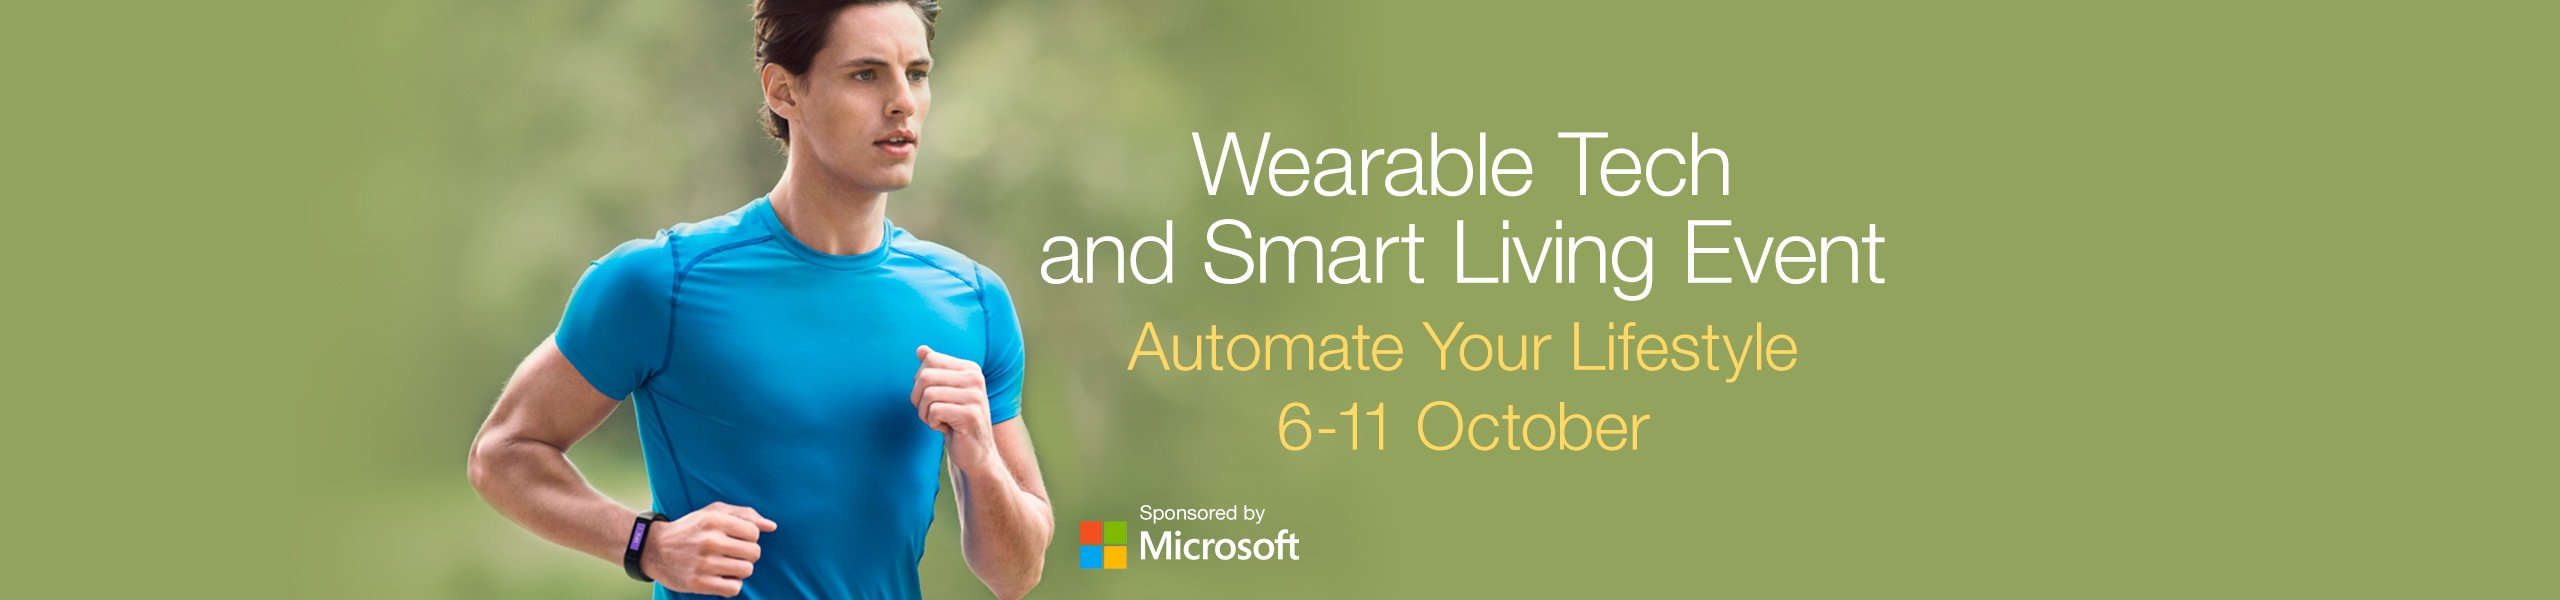 Wearable Tech Event